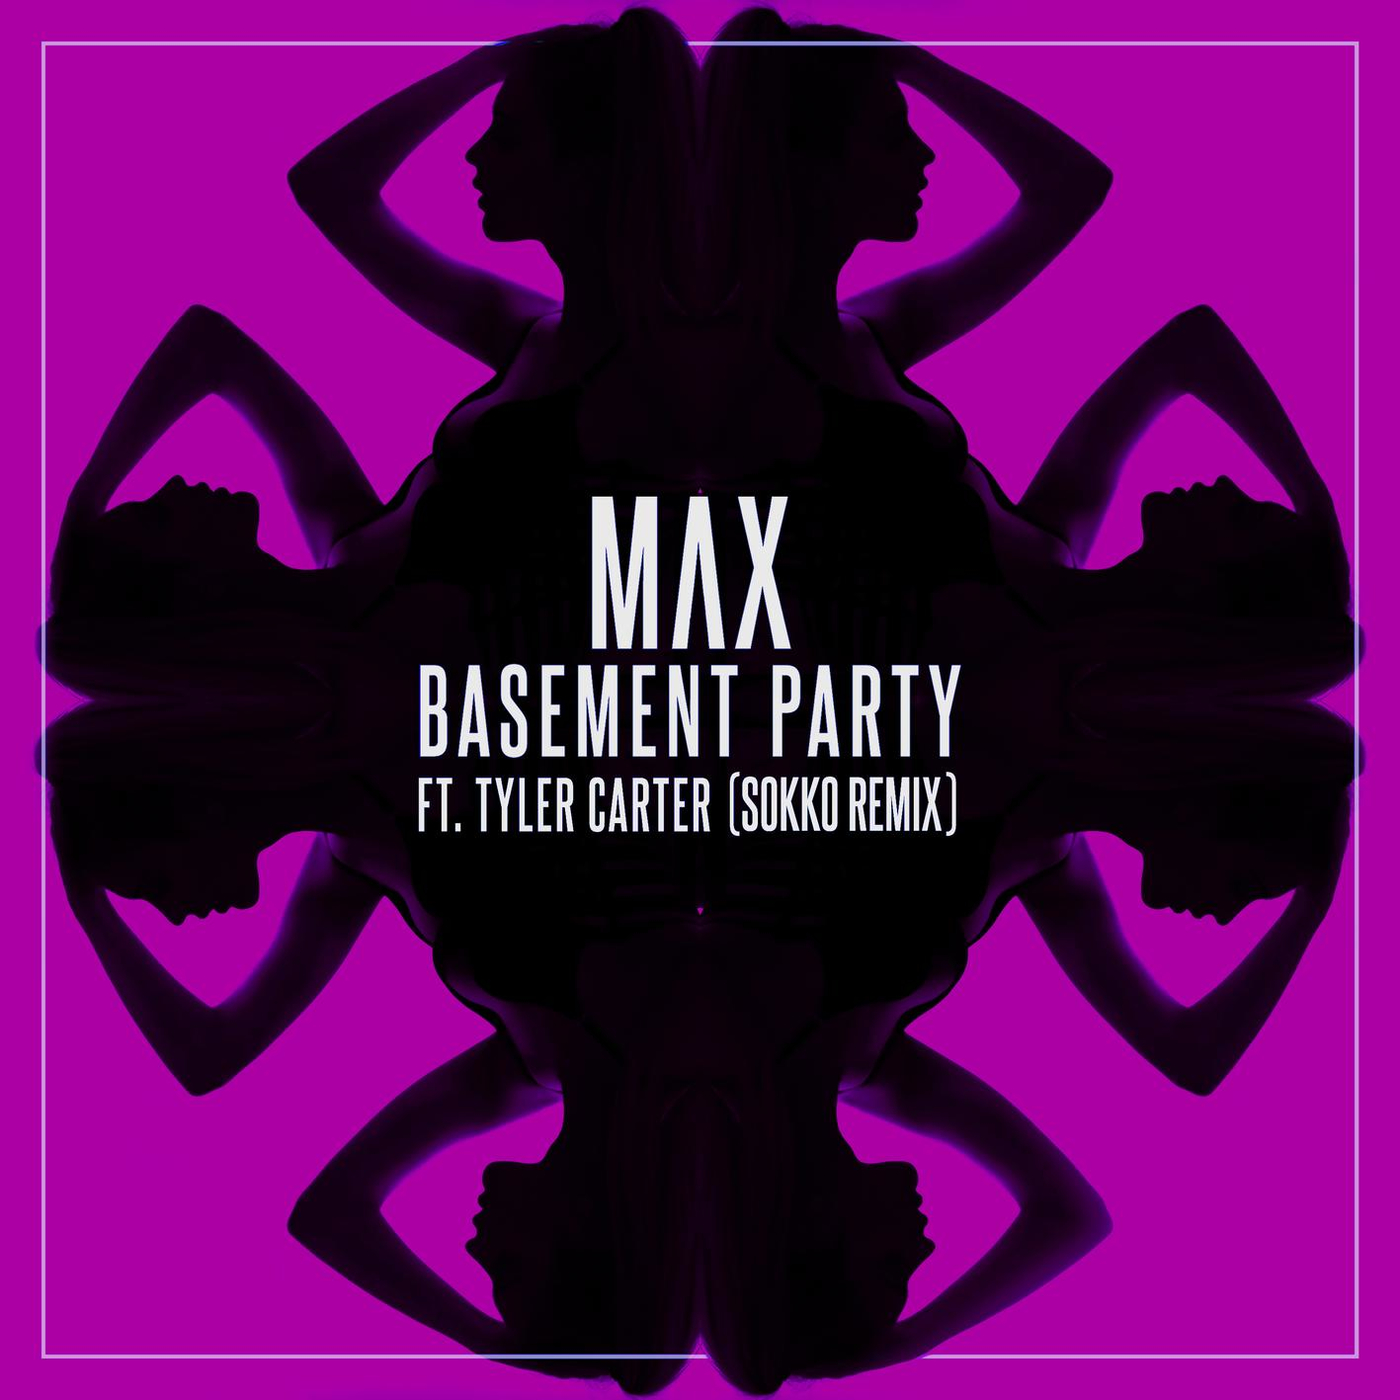 MAX feat. Tyler Carter - Basement Party [single] (2016)